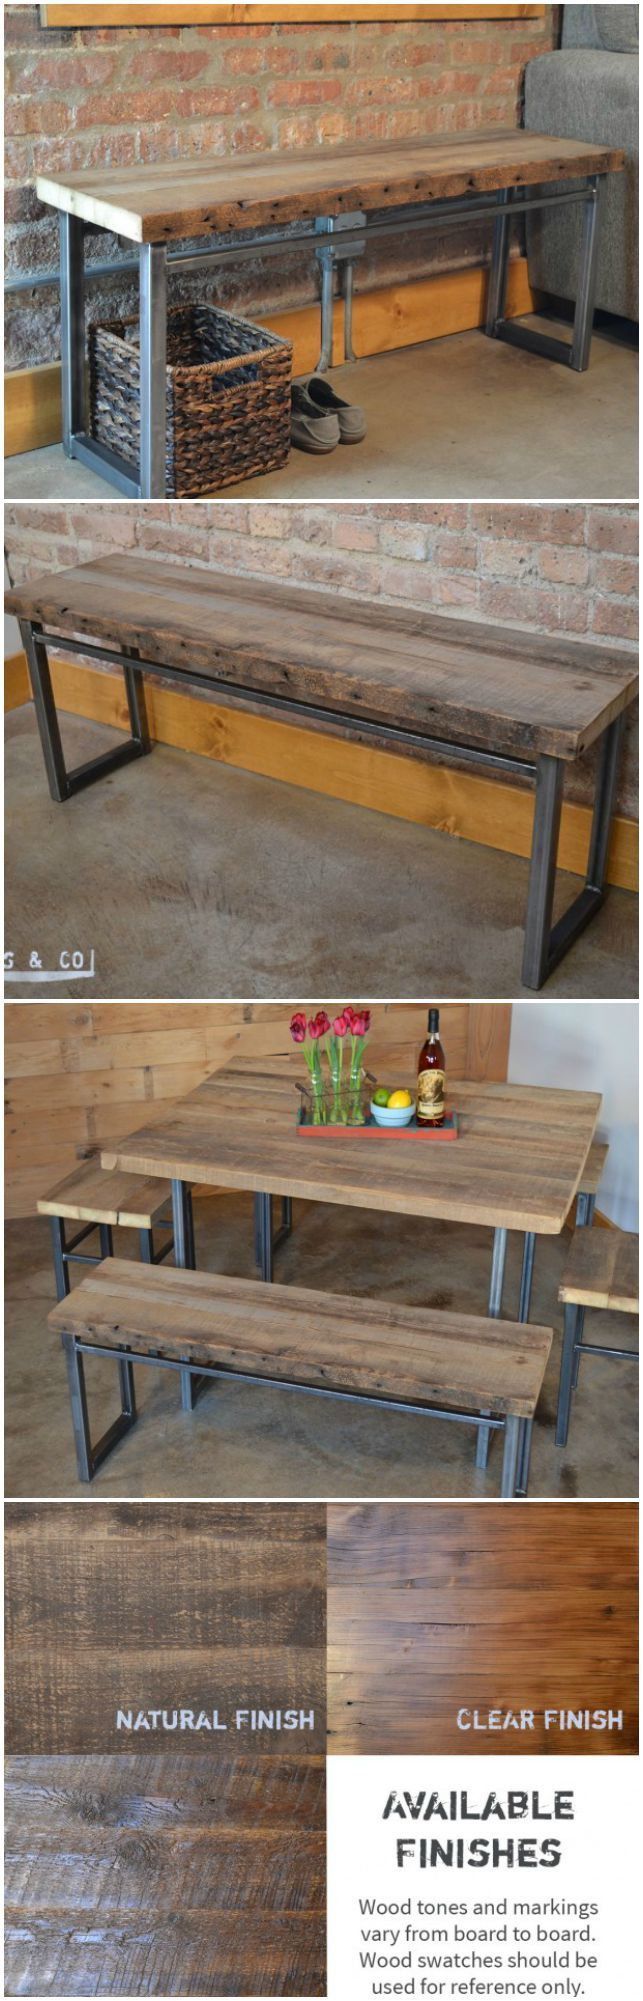 "Handcrafted wooden bench with metal legs - 48"" - USA Made furniture - The Emerson Bench is handcrafted from old growth reclaimed wood that was salvaged from an early 19th century barn located in Northern Illinois. Handmade by Wood Stock and Co on aftcra."